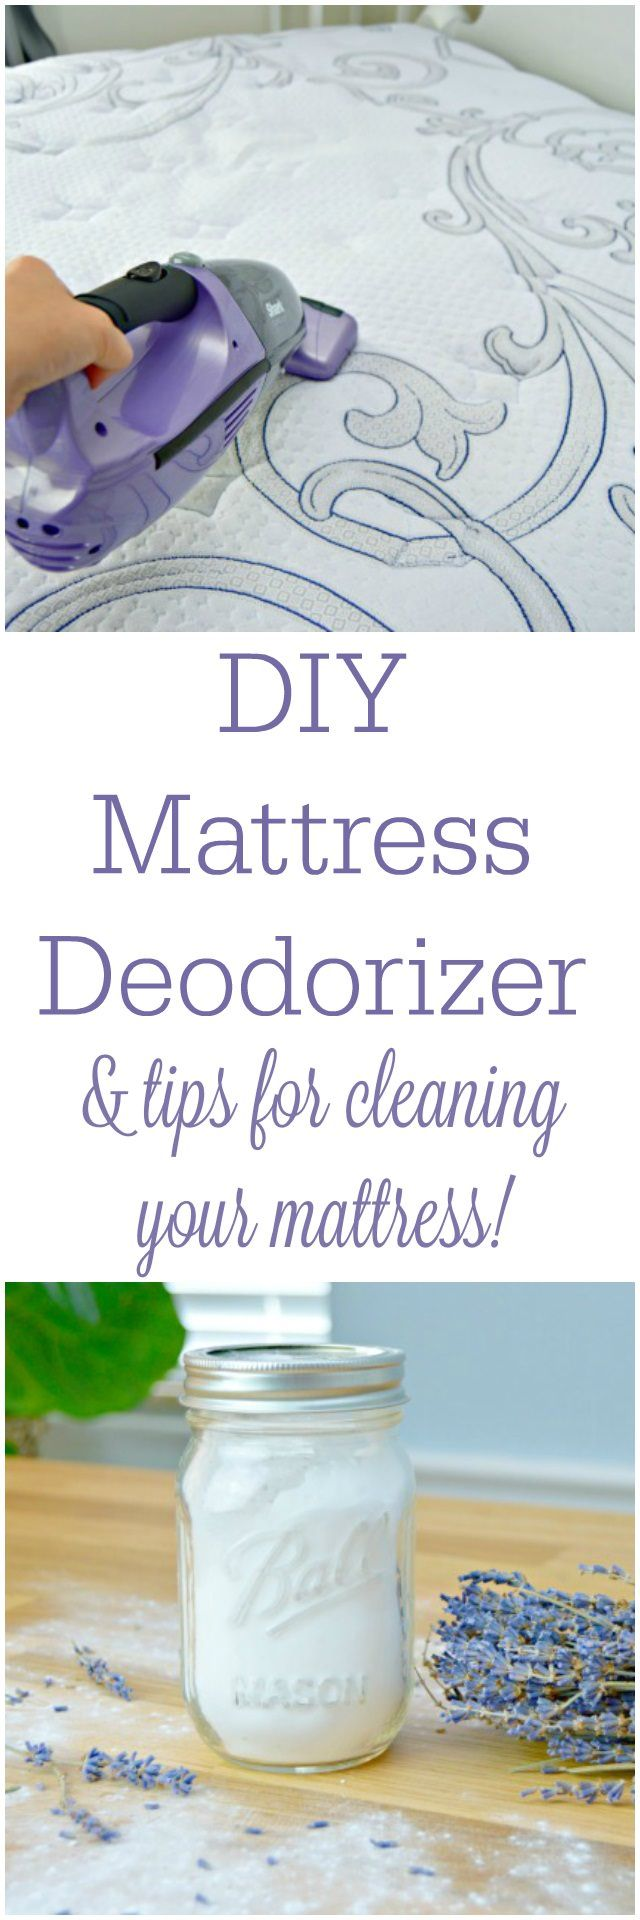 how to deep clean a bed mattress